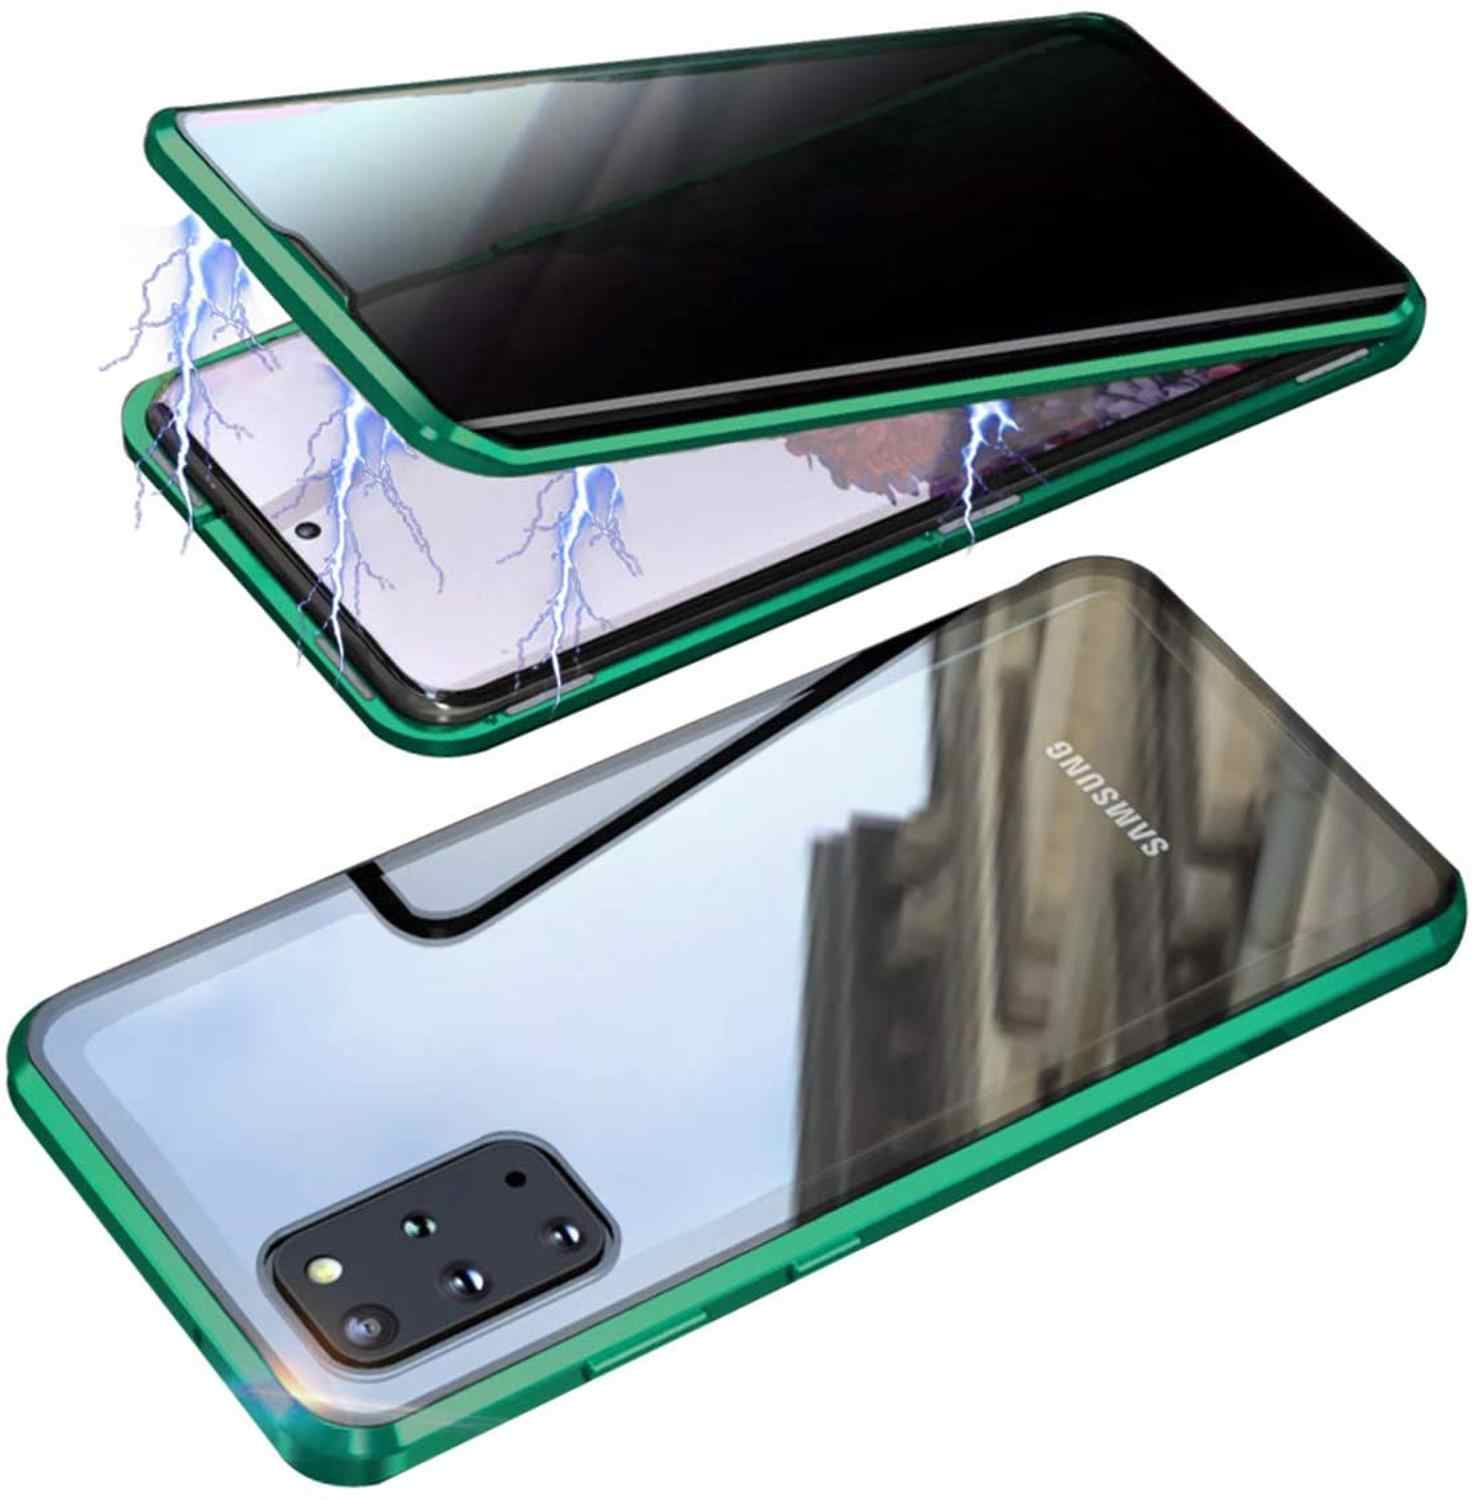 Privacy Gehard Glas 360 Volledige Cover Magnetische Telefoon Case Voor Samsung Galaxy S20 Ultra S10 Plus S9 S8 Note 10 a50 A70 A30S Metalen